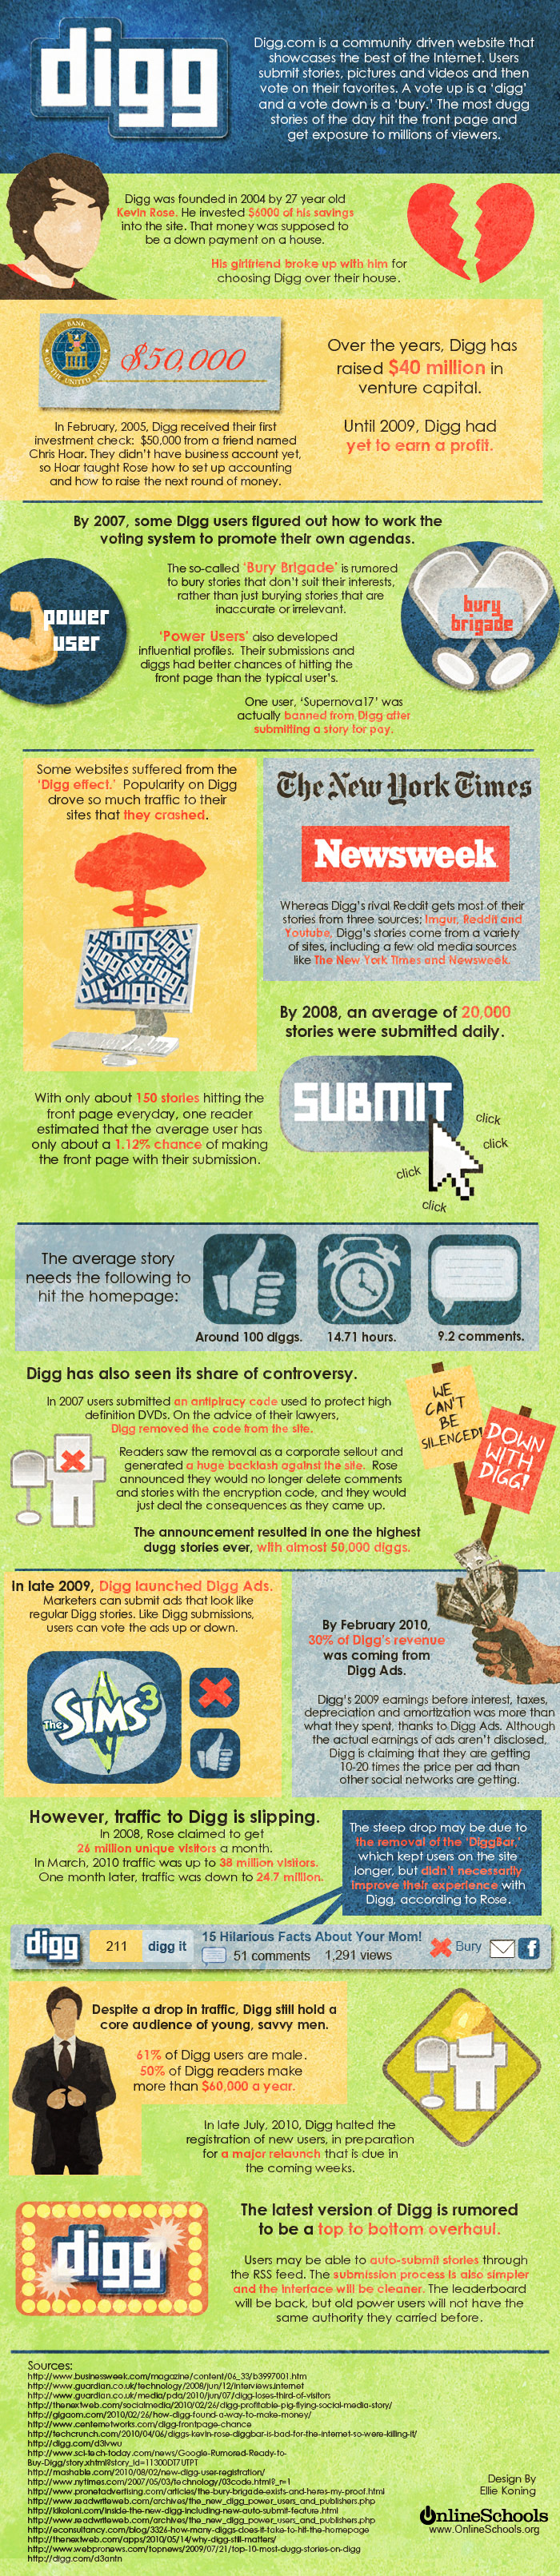 The History of Digg [Infographic]